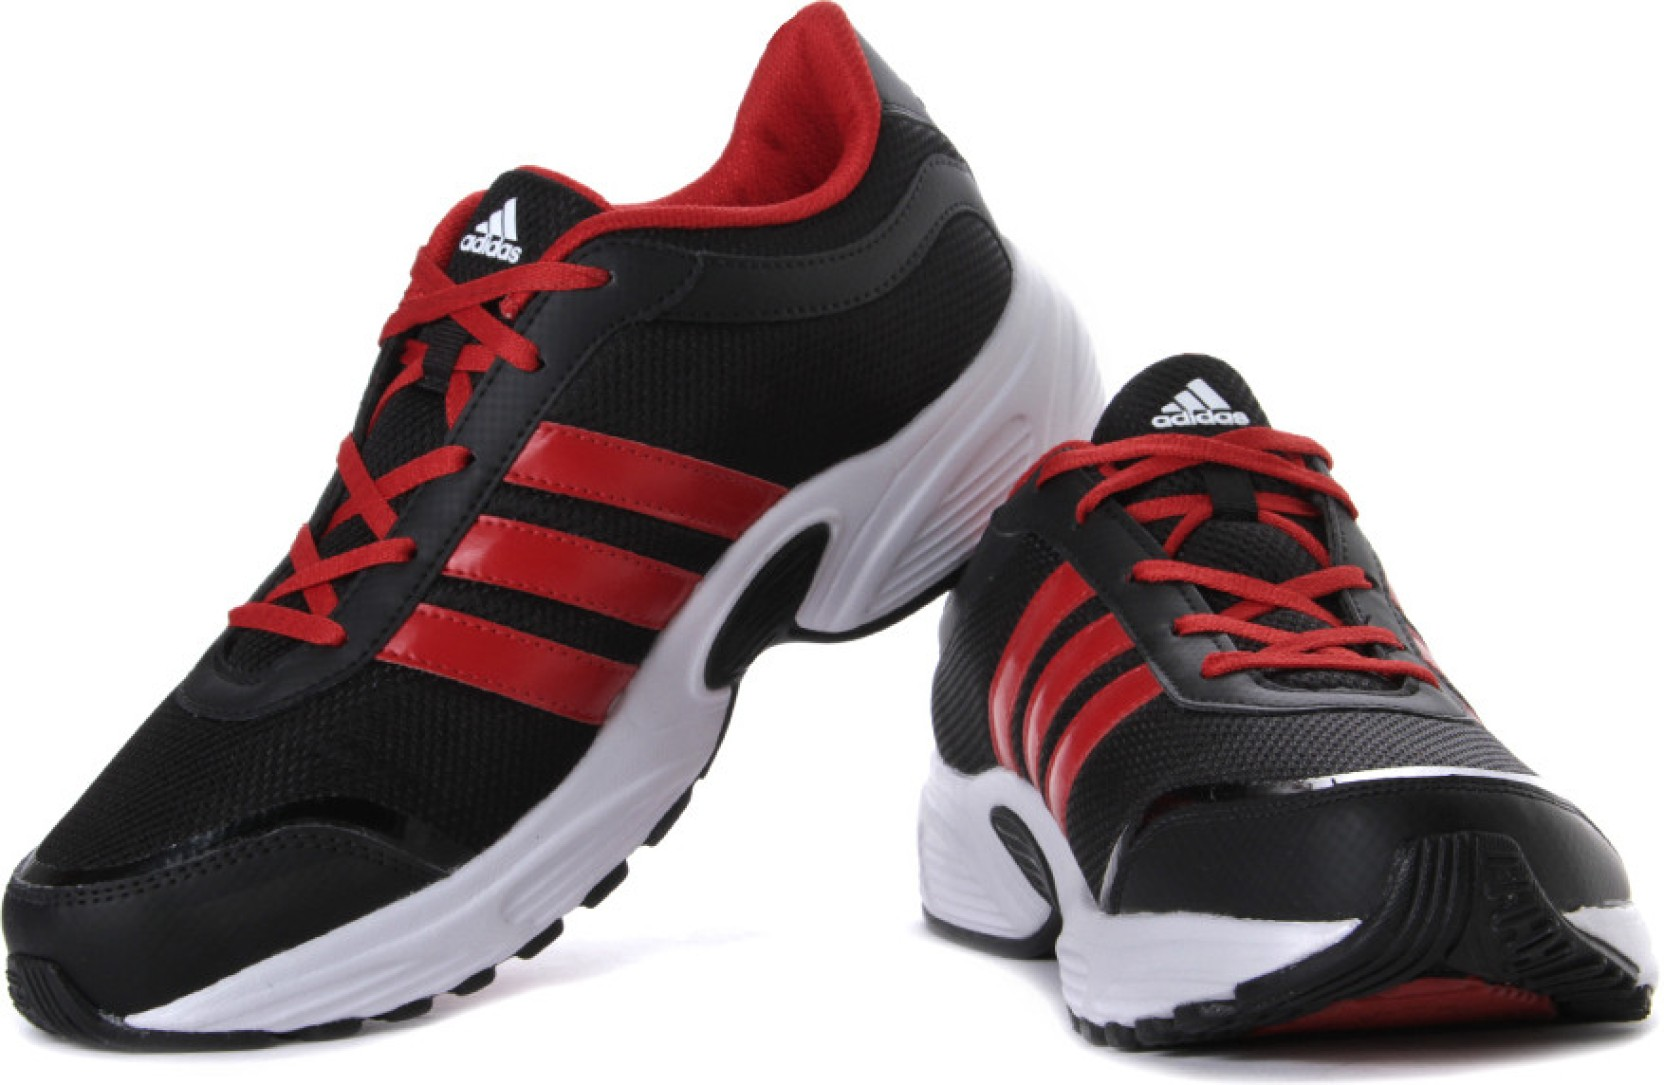 Best Adidas Shoes To Sell